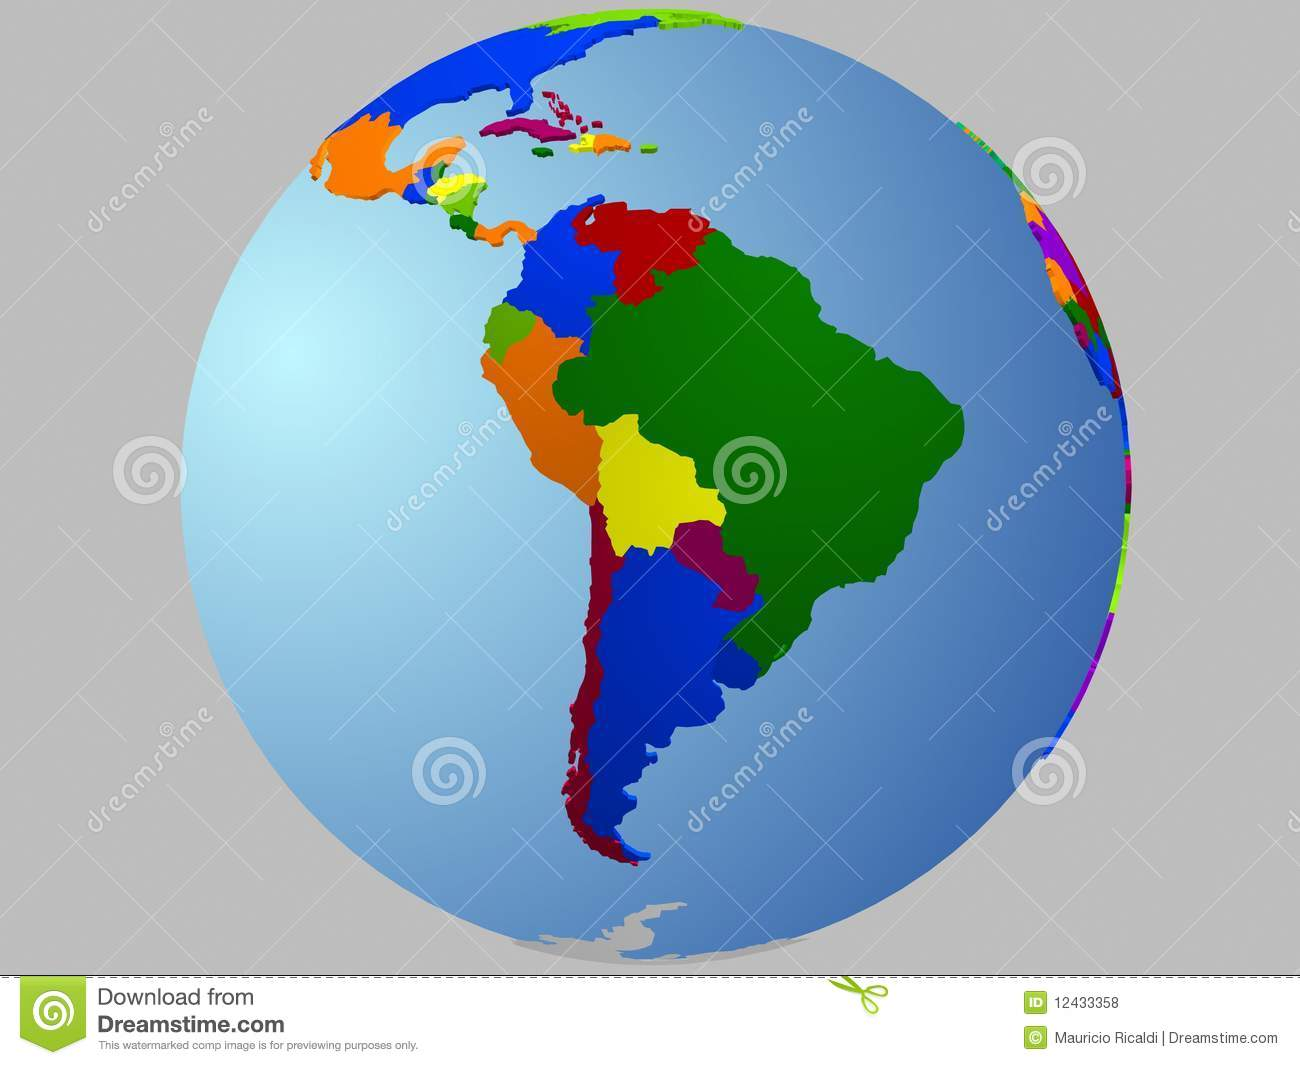 South America globe map stock vector. Illustration of ... on map of antarctica globe, map of pacific ocean globe, map of world globe,